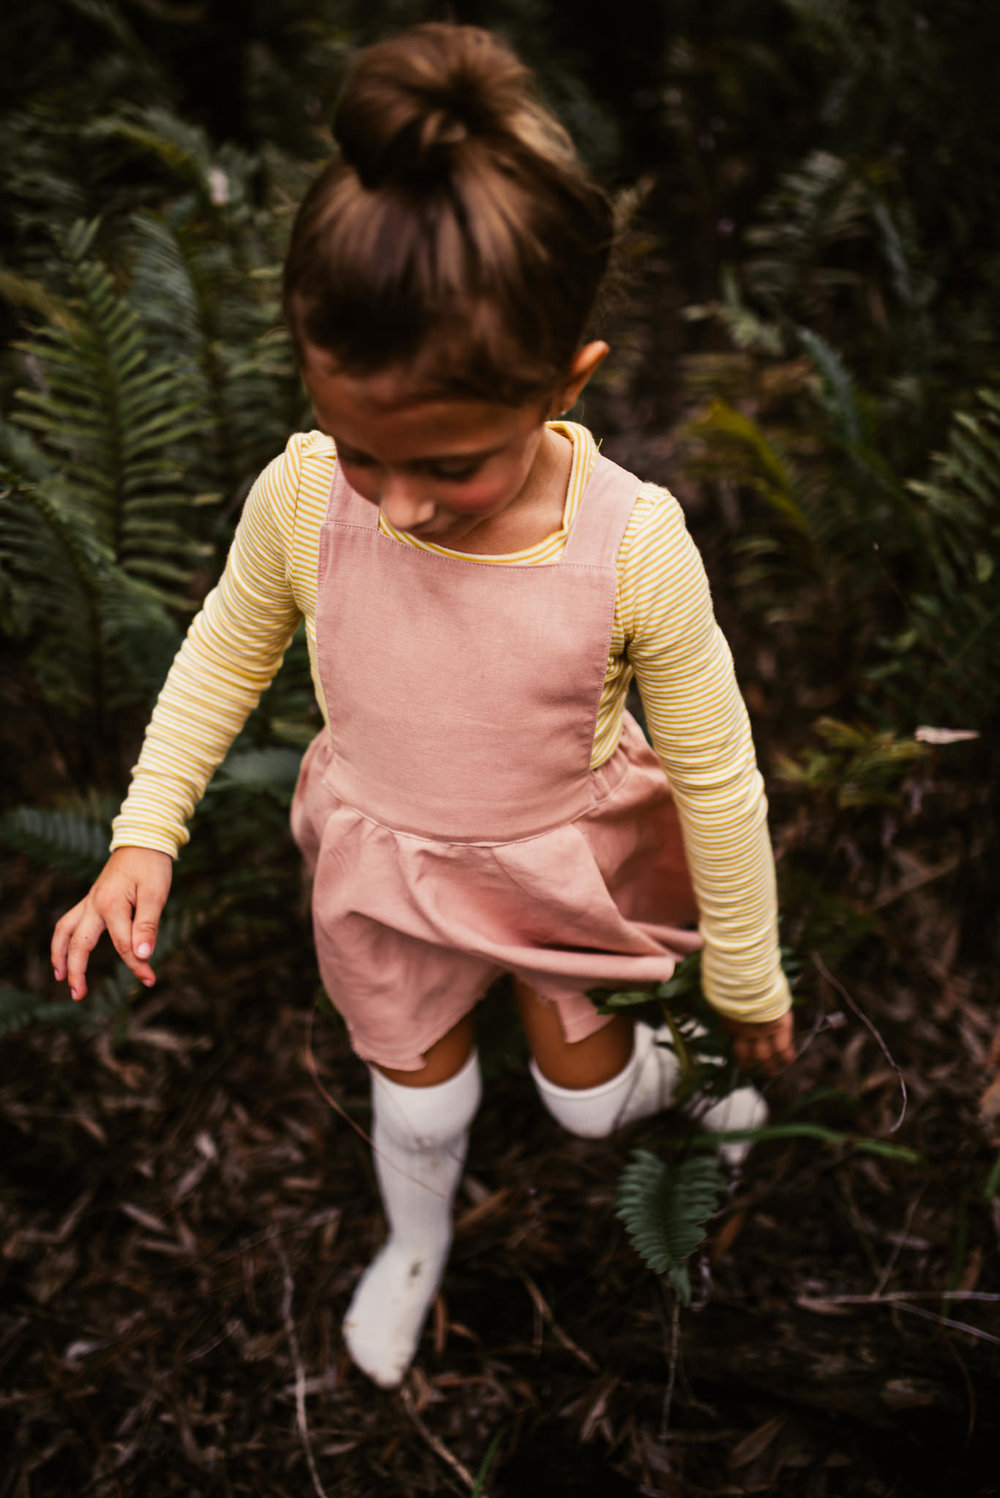 twyla jones photography - treasure coast florida - childrens adventure clothing commercial shoot--24.jpg